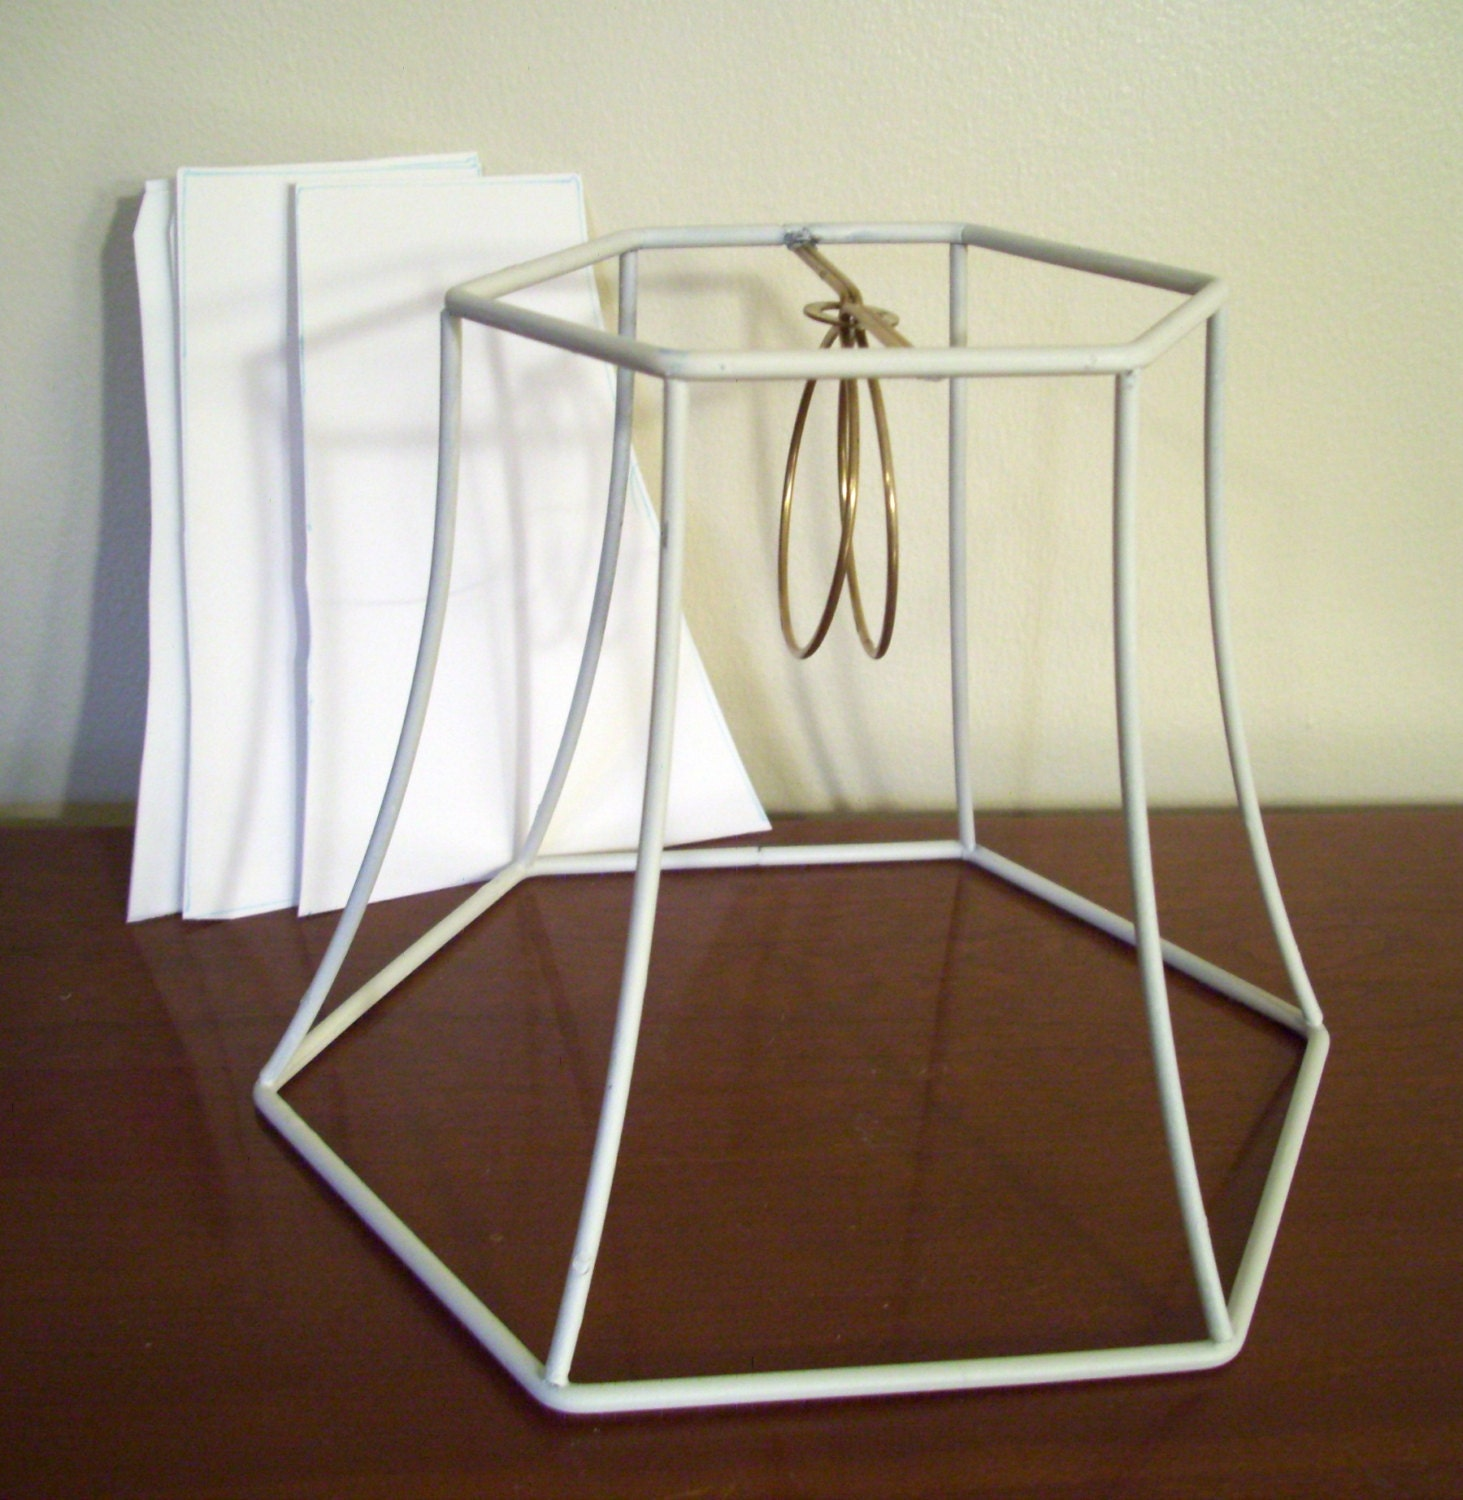 hex bell lampshade frame lamp shade supplies. Black Bedroom Furniture Sets. Home Design Ideas